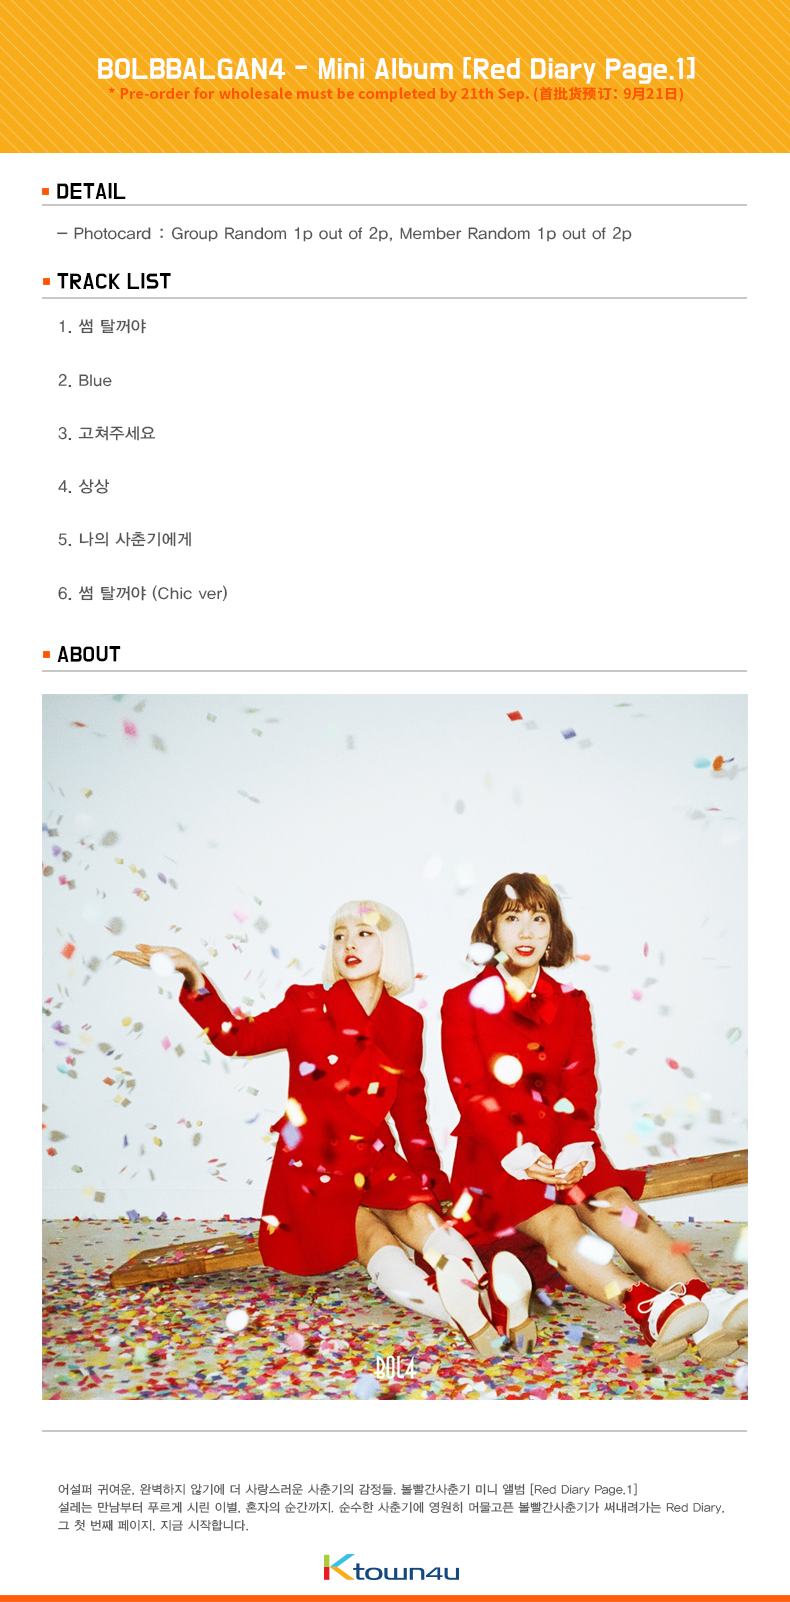 BOLBBALGAN4 - Mini Album [Red Diary Page.1]